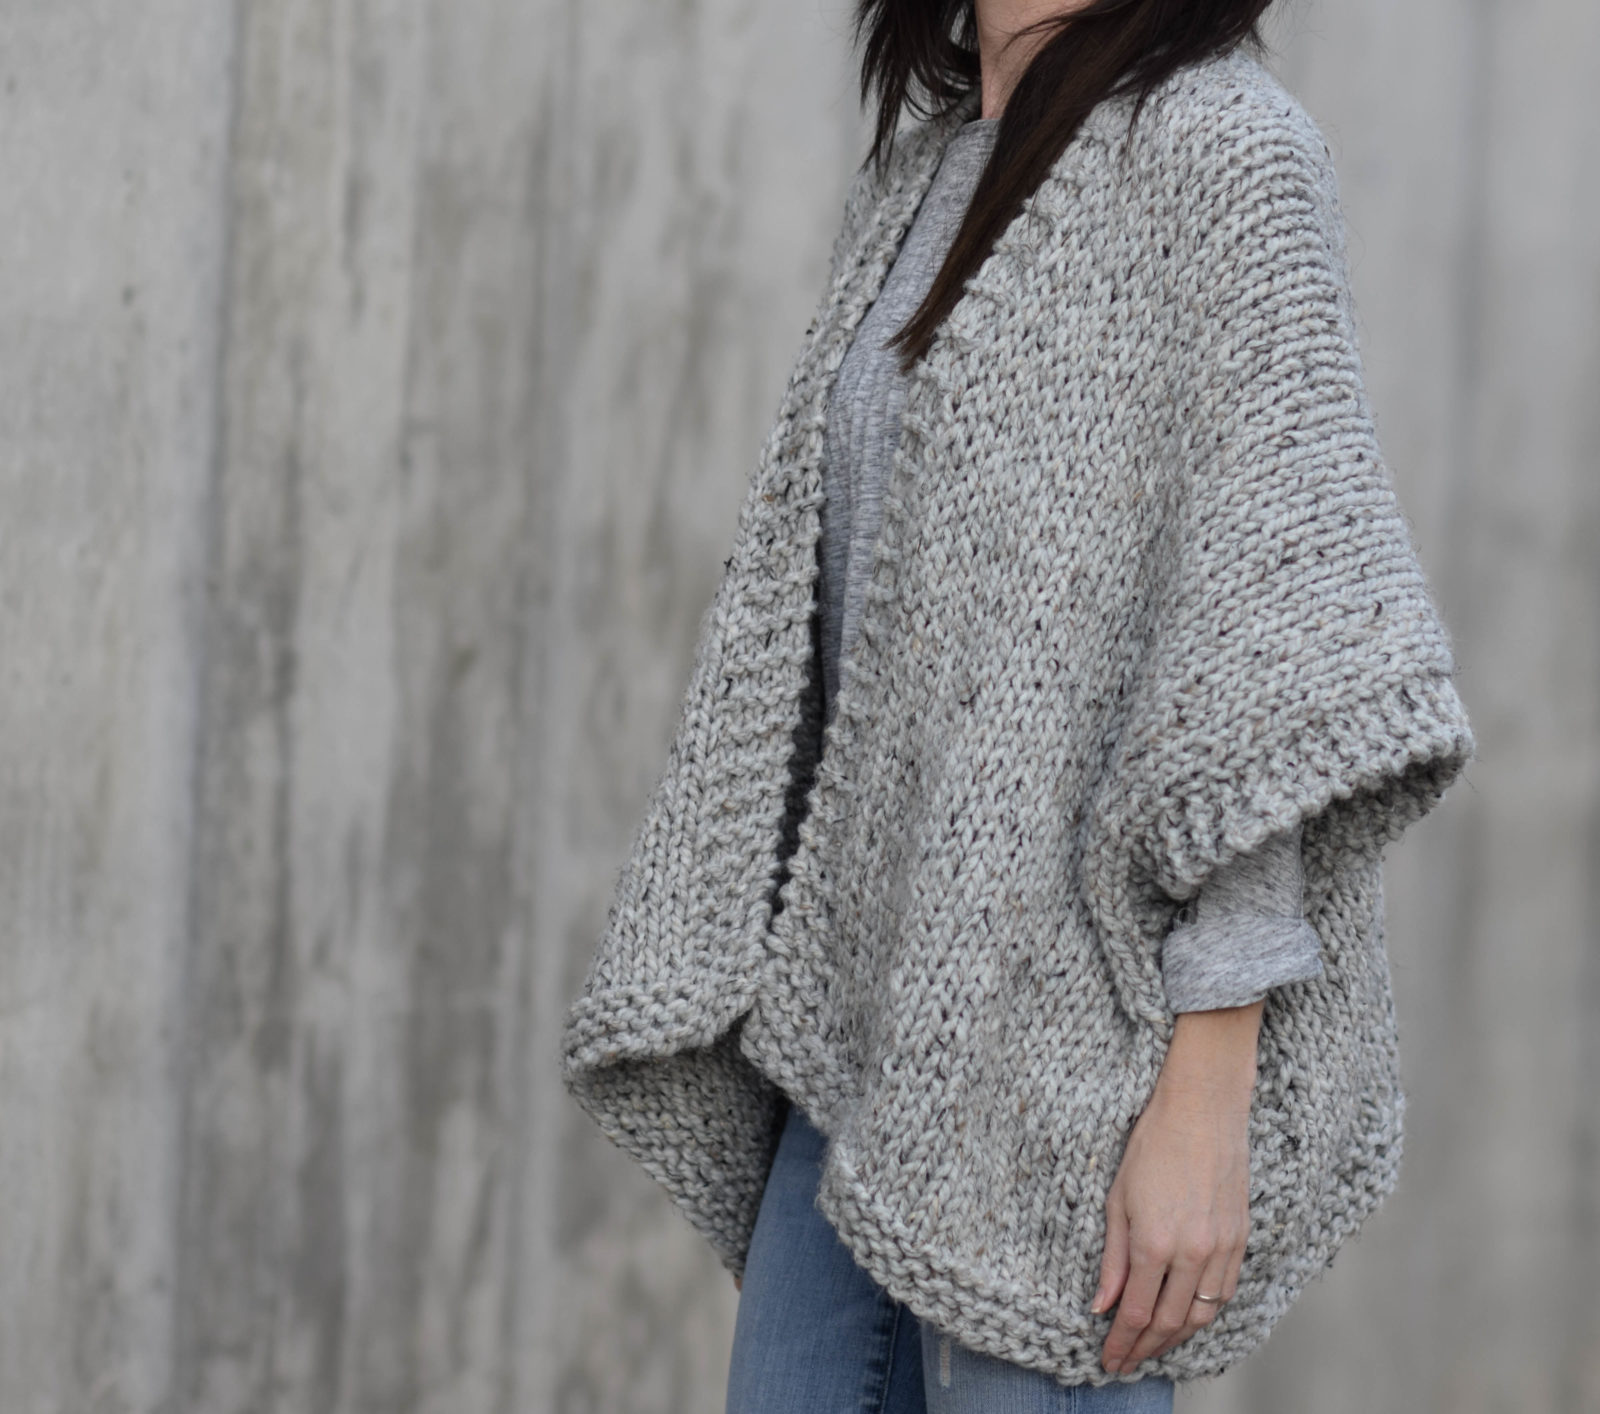 Telluride Easy Knit Kimono Pattern - Mama In A Stitch